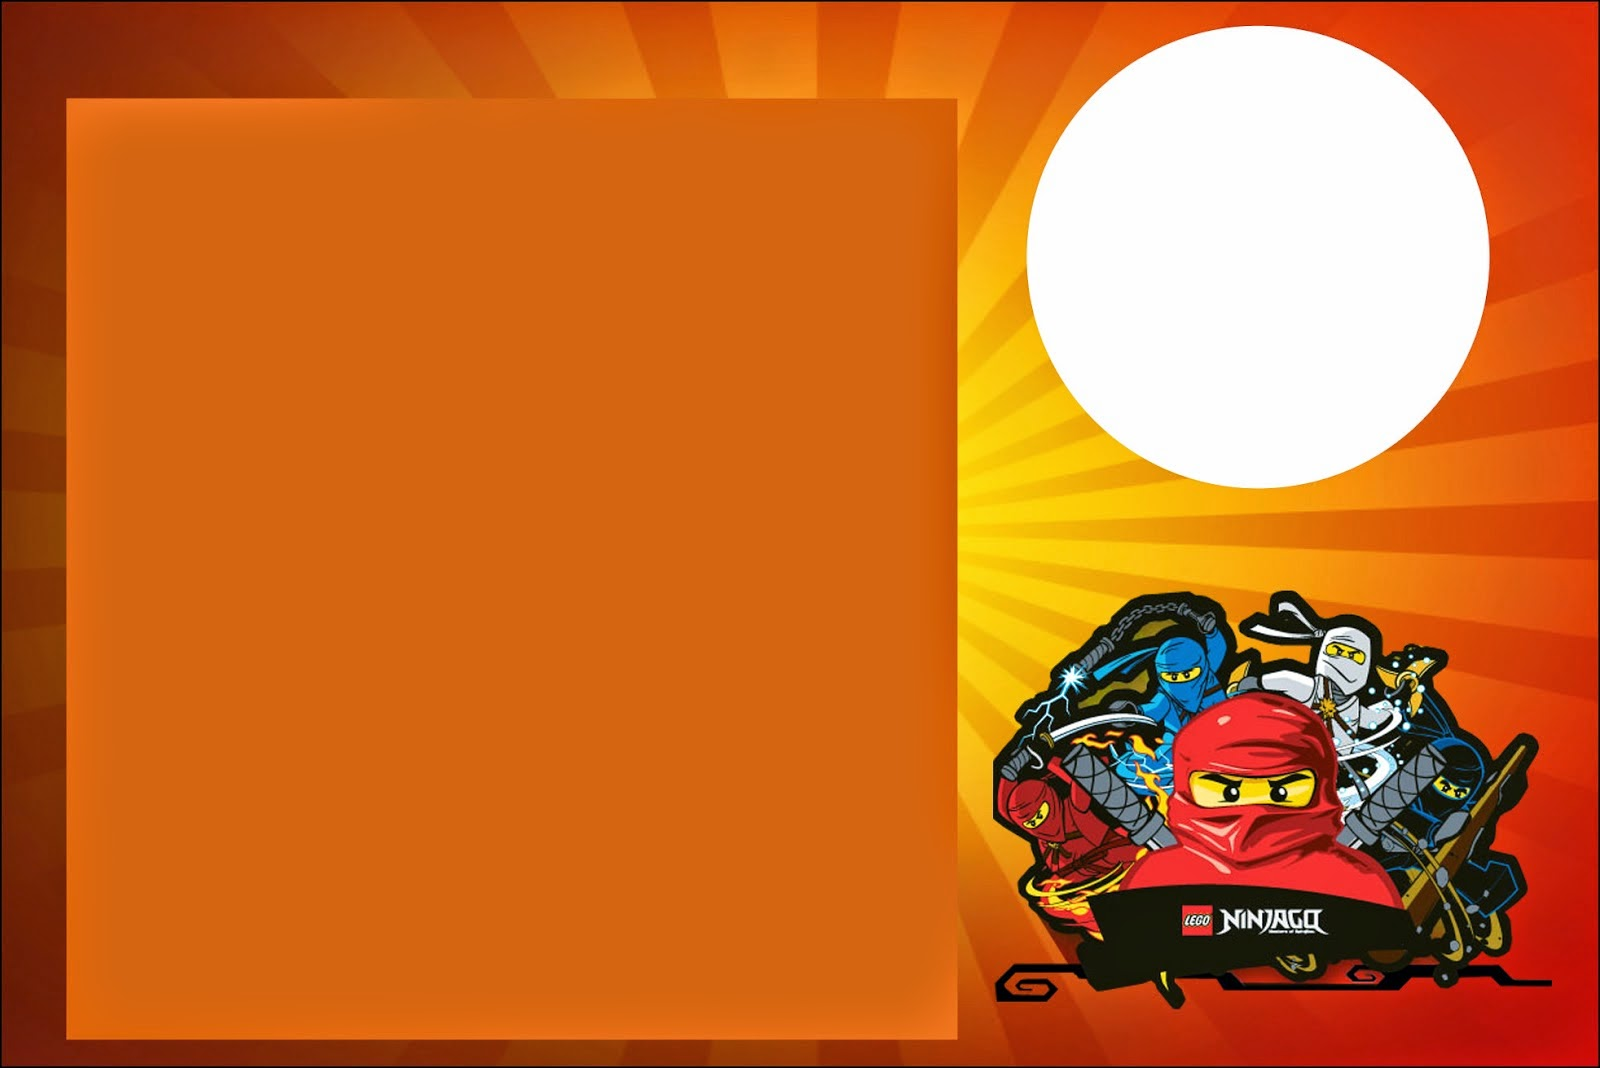 Ninjago Free Printable Invitations Oh My Fiesta for Geeks